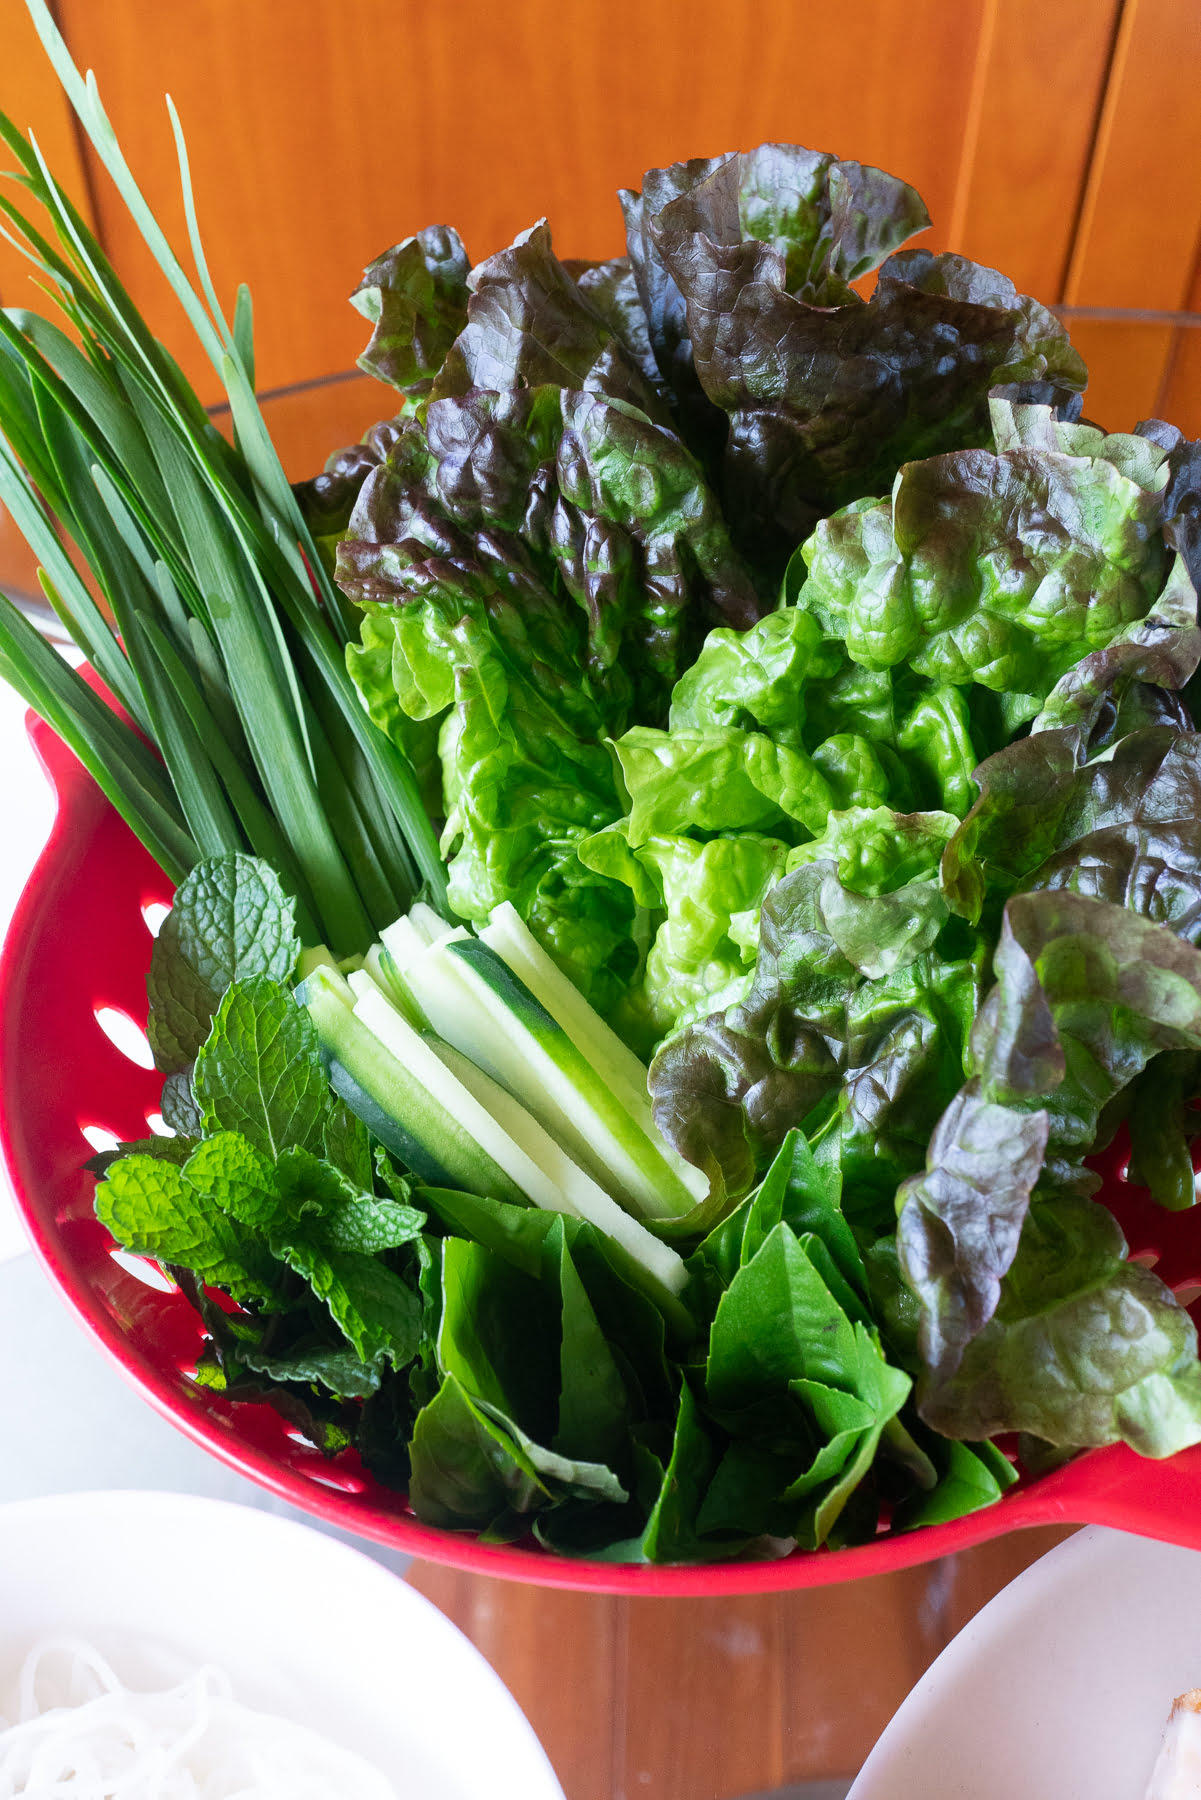 A colander filled with fresh vegetables and herbs used to make summer rolls.